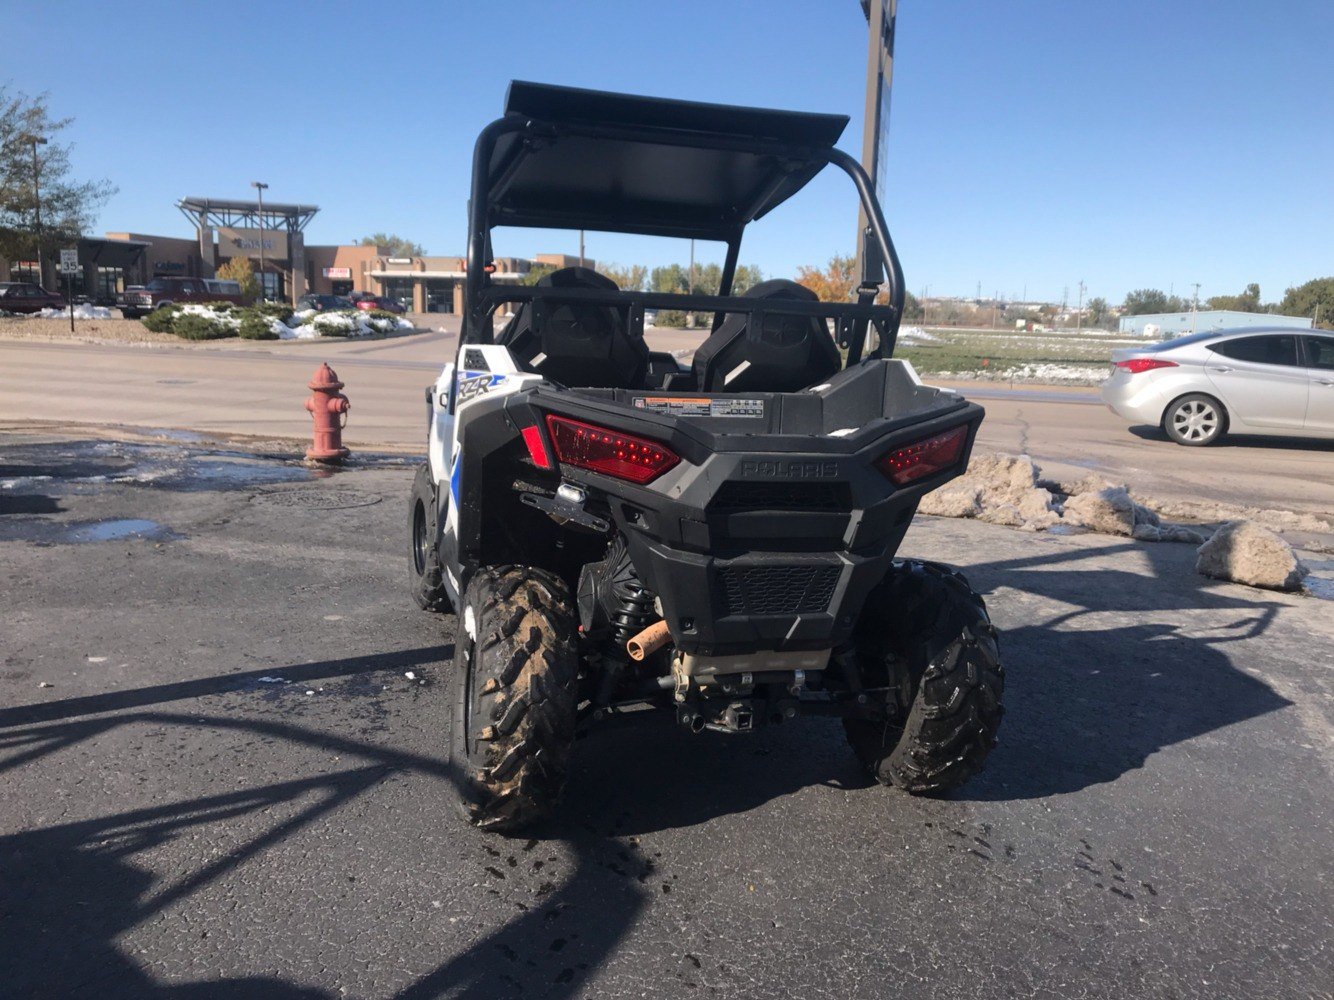 2018 Polaris RZR 900 in Rapid City, South Dakota - Photo 5